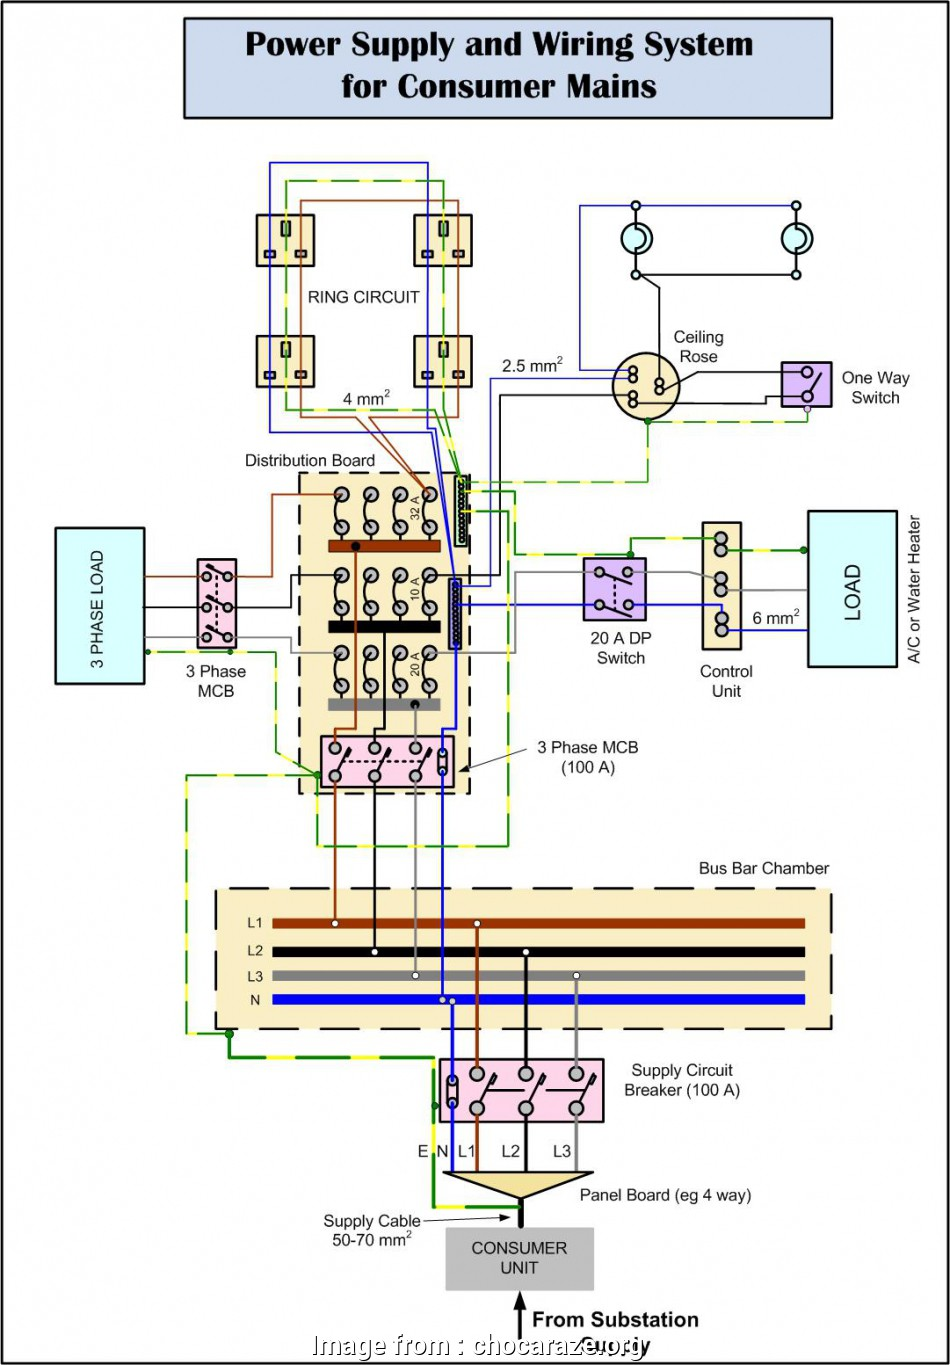 19 Por Electrical Wiring Residential Light Switch Photos ... Electrical Wiring Residential on